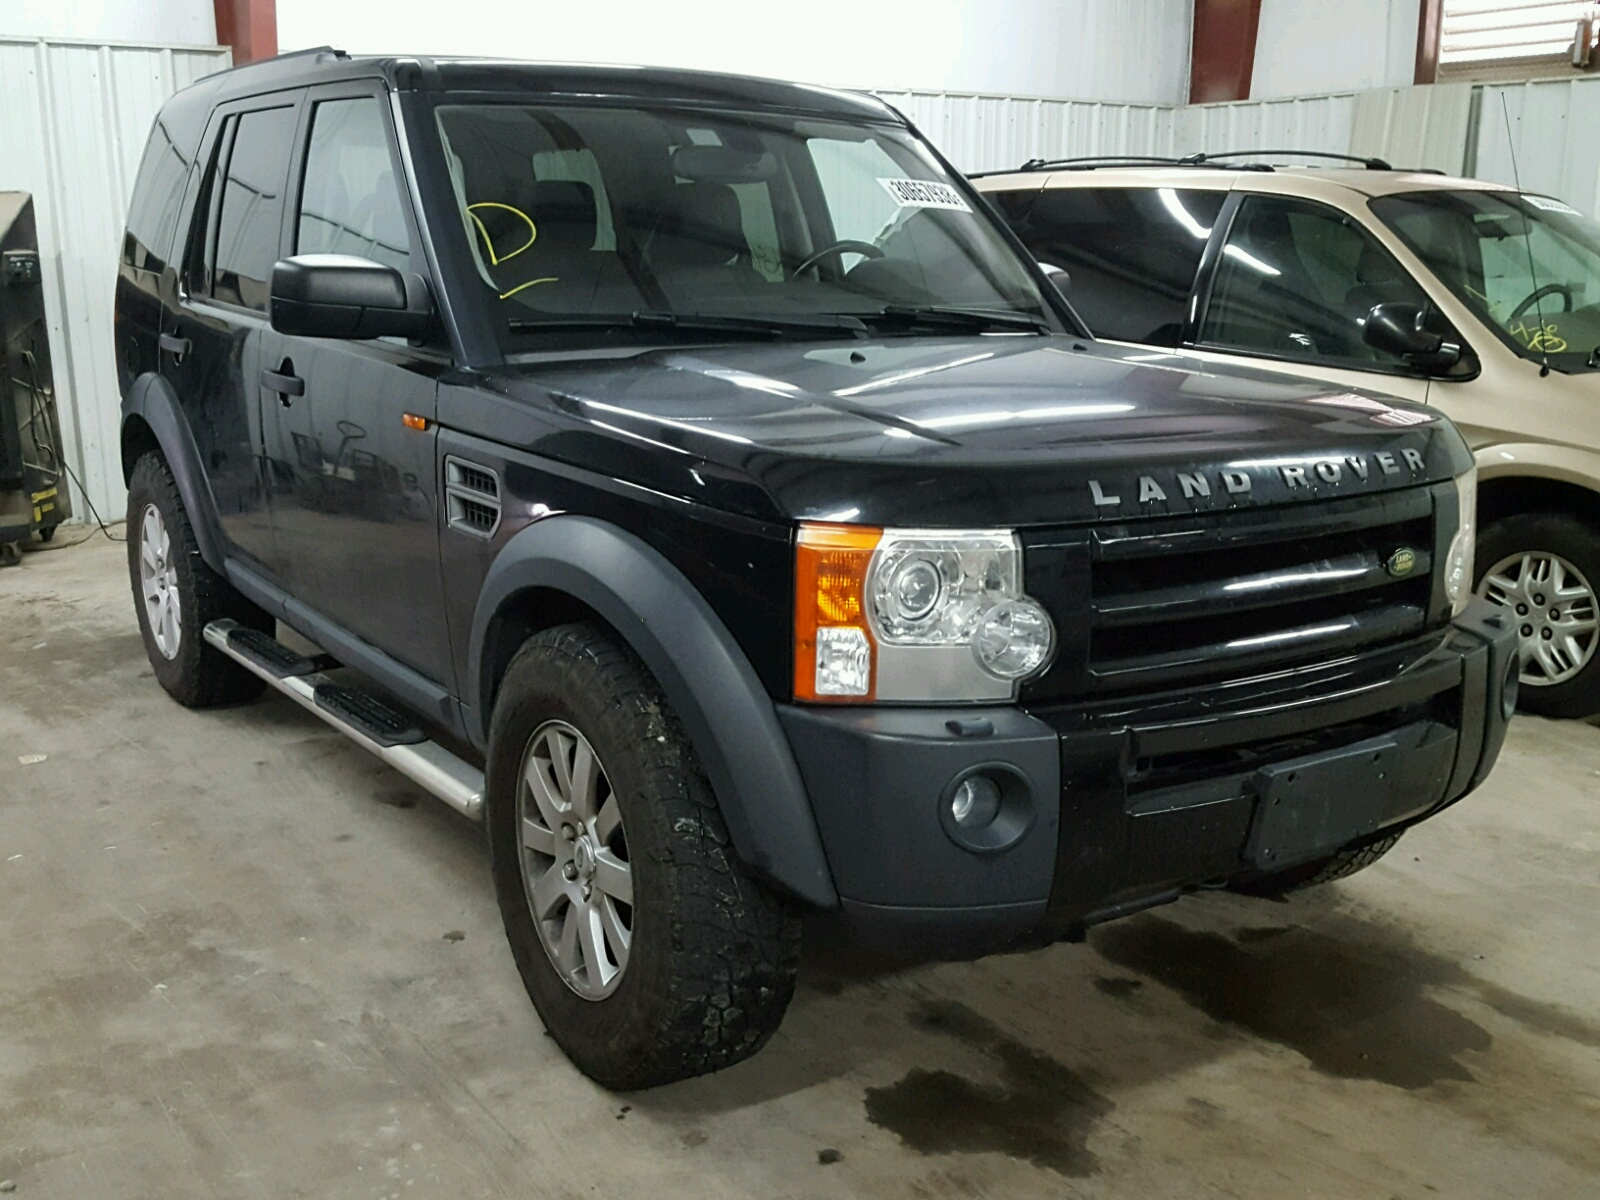 landrover youtube rover sale discovery land tonbridge for watch hse in